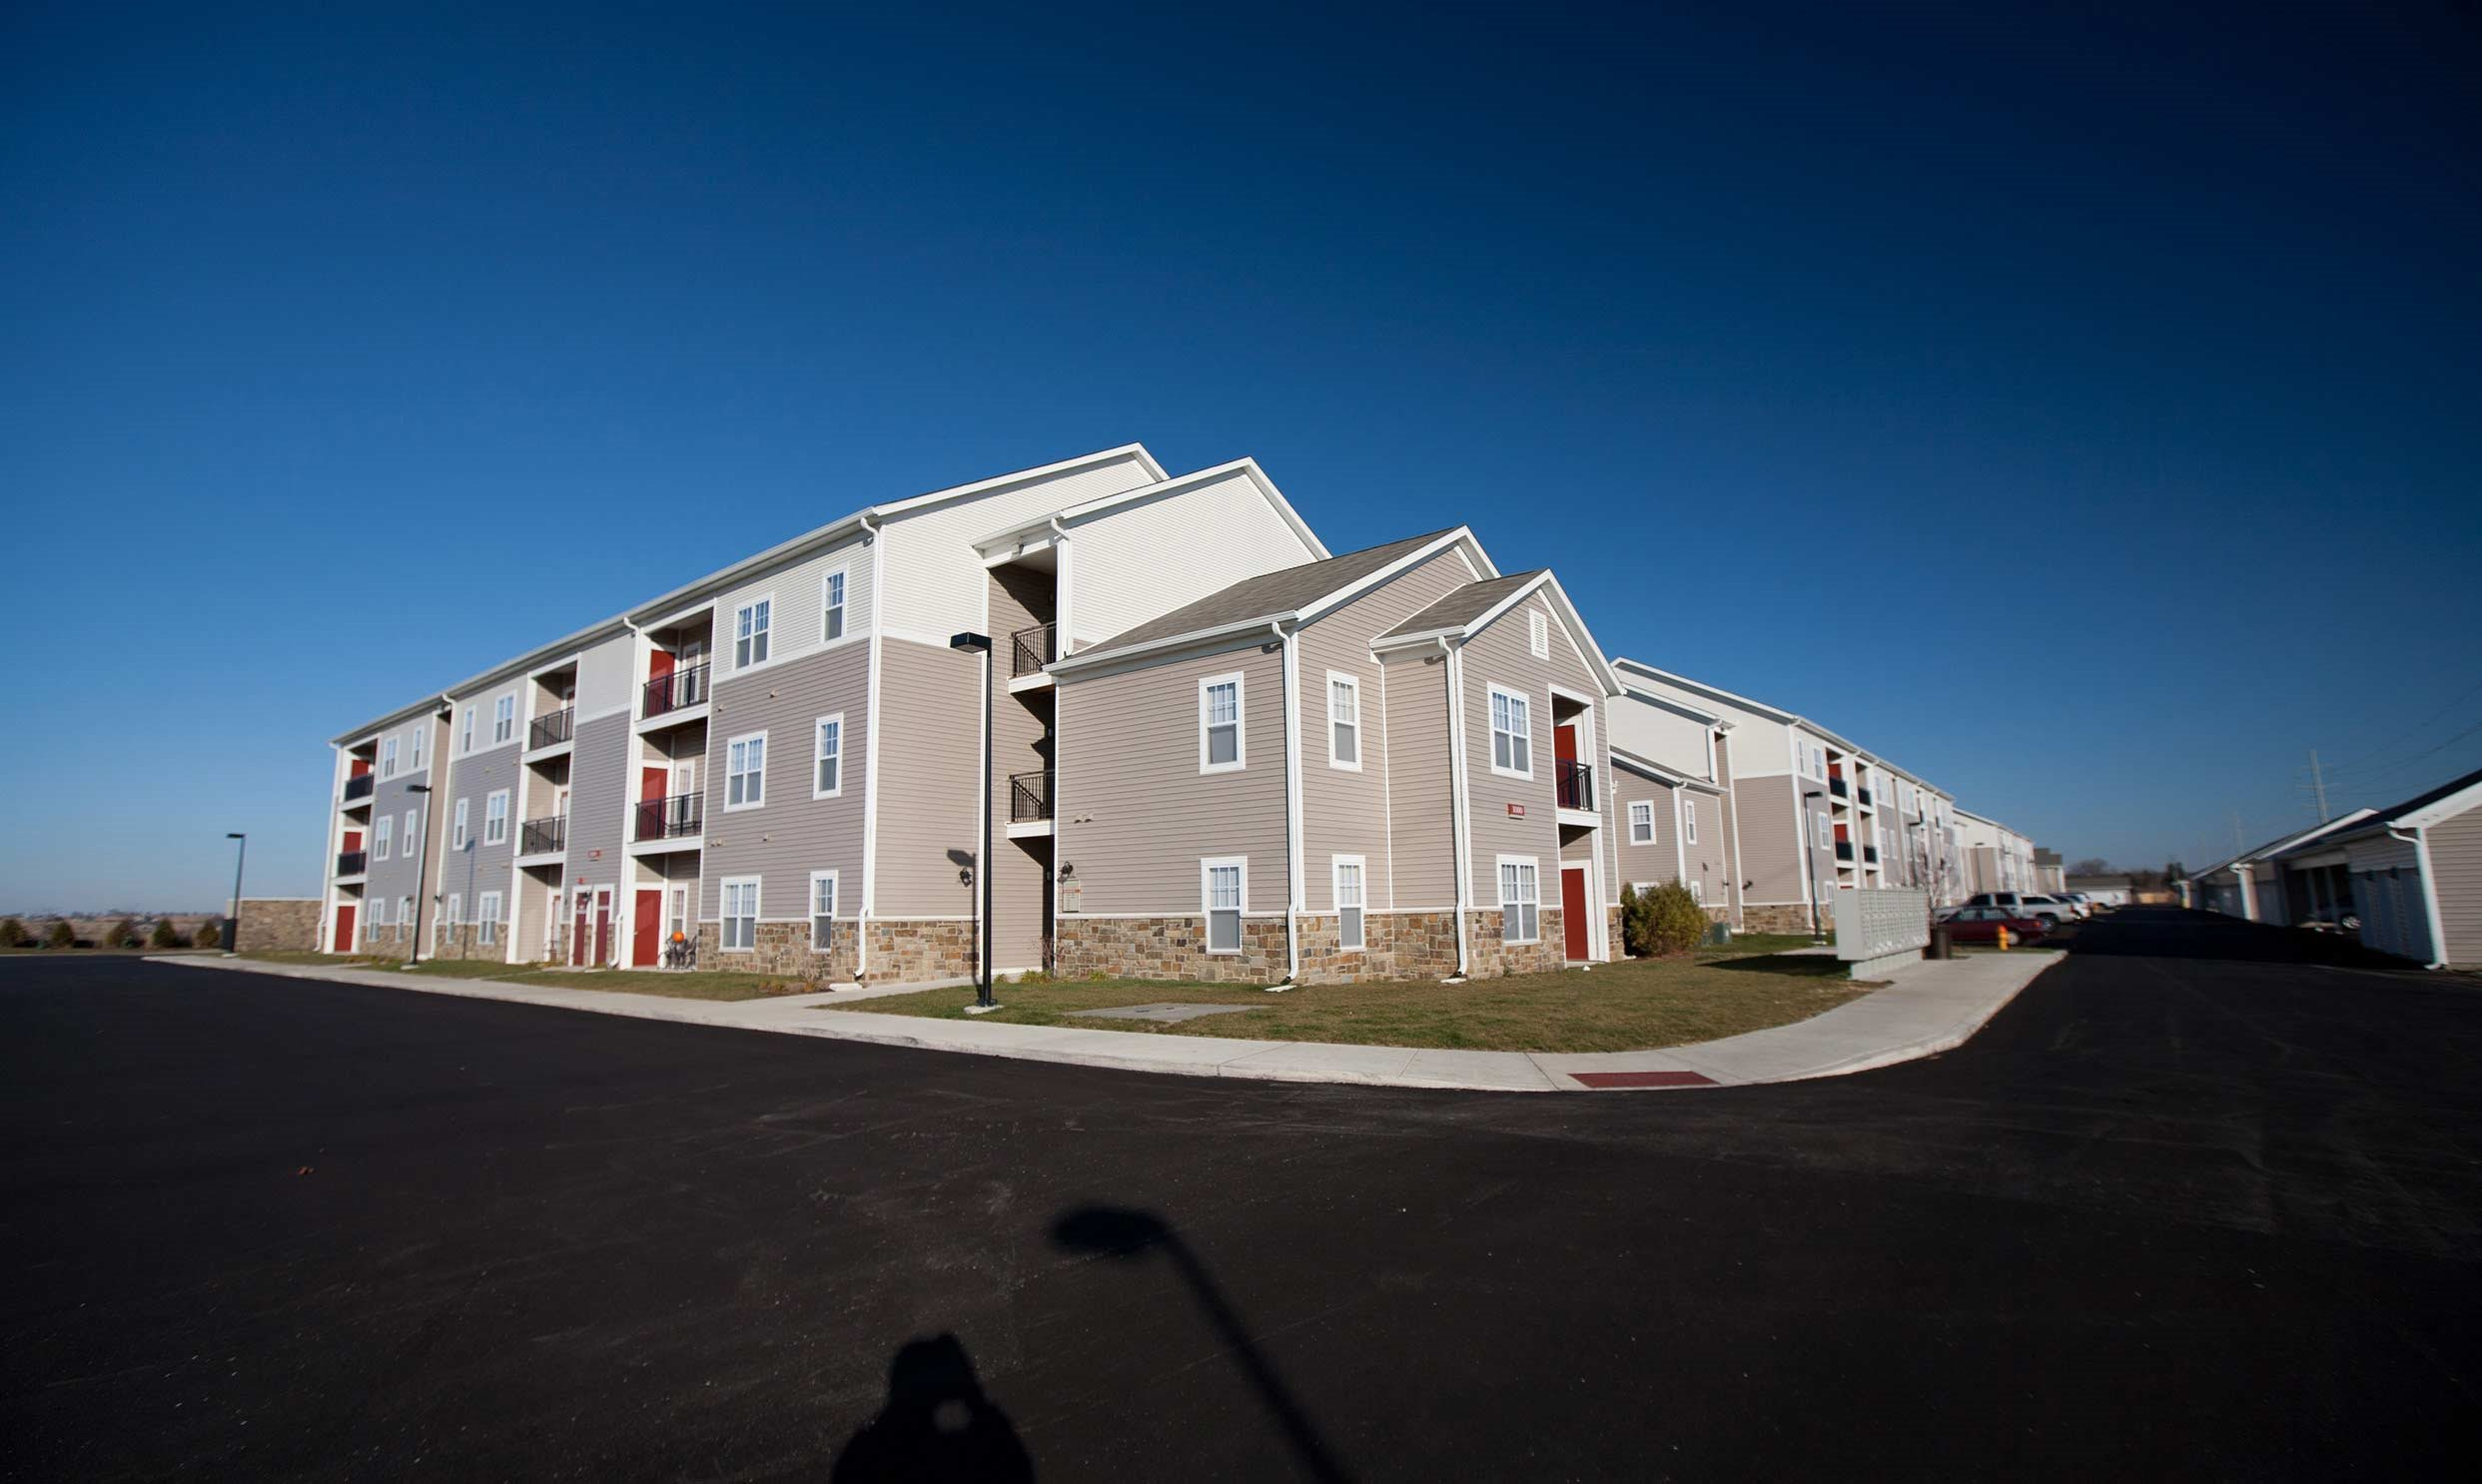 Apartments at Grand Prairie  Peoria  Illinois. Apartments at Grand Prairie   Apartments in Peoria  IL